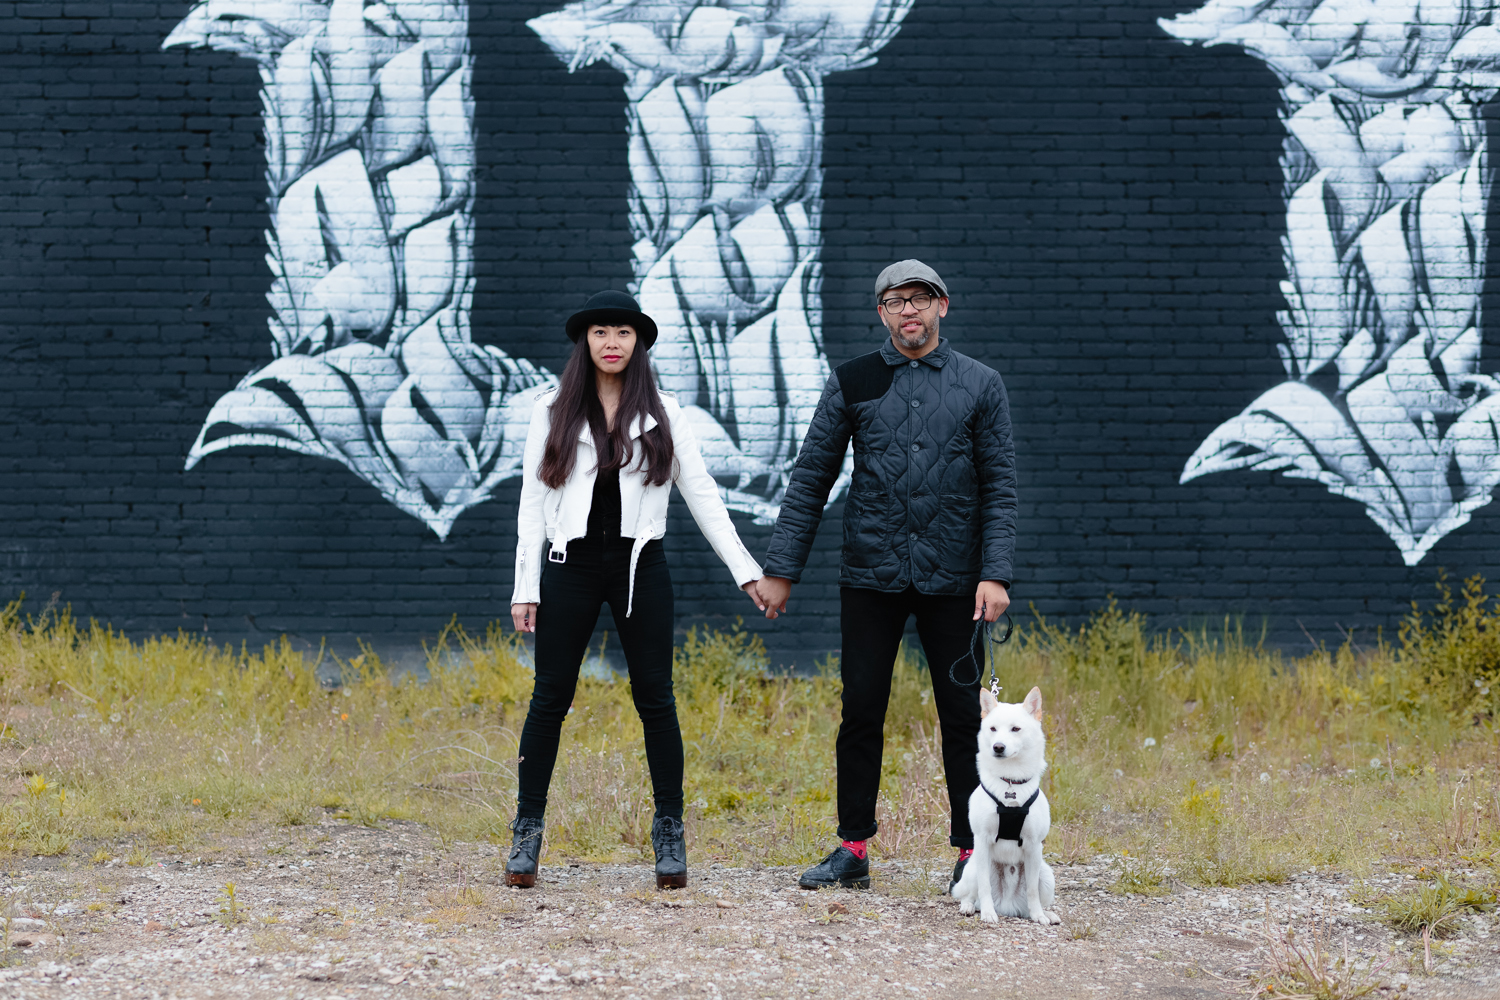 Black and White Engagement Shoot in Humboldt Park with Hiro the Dog